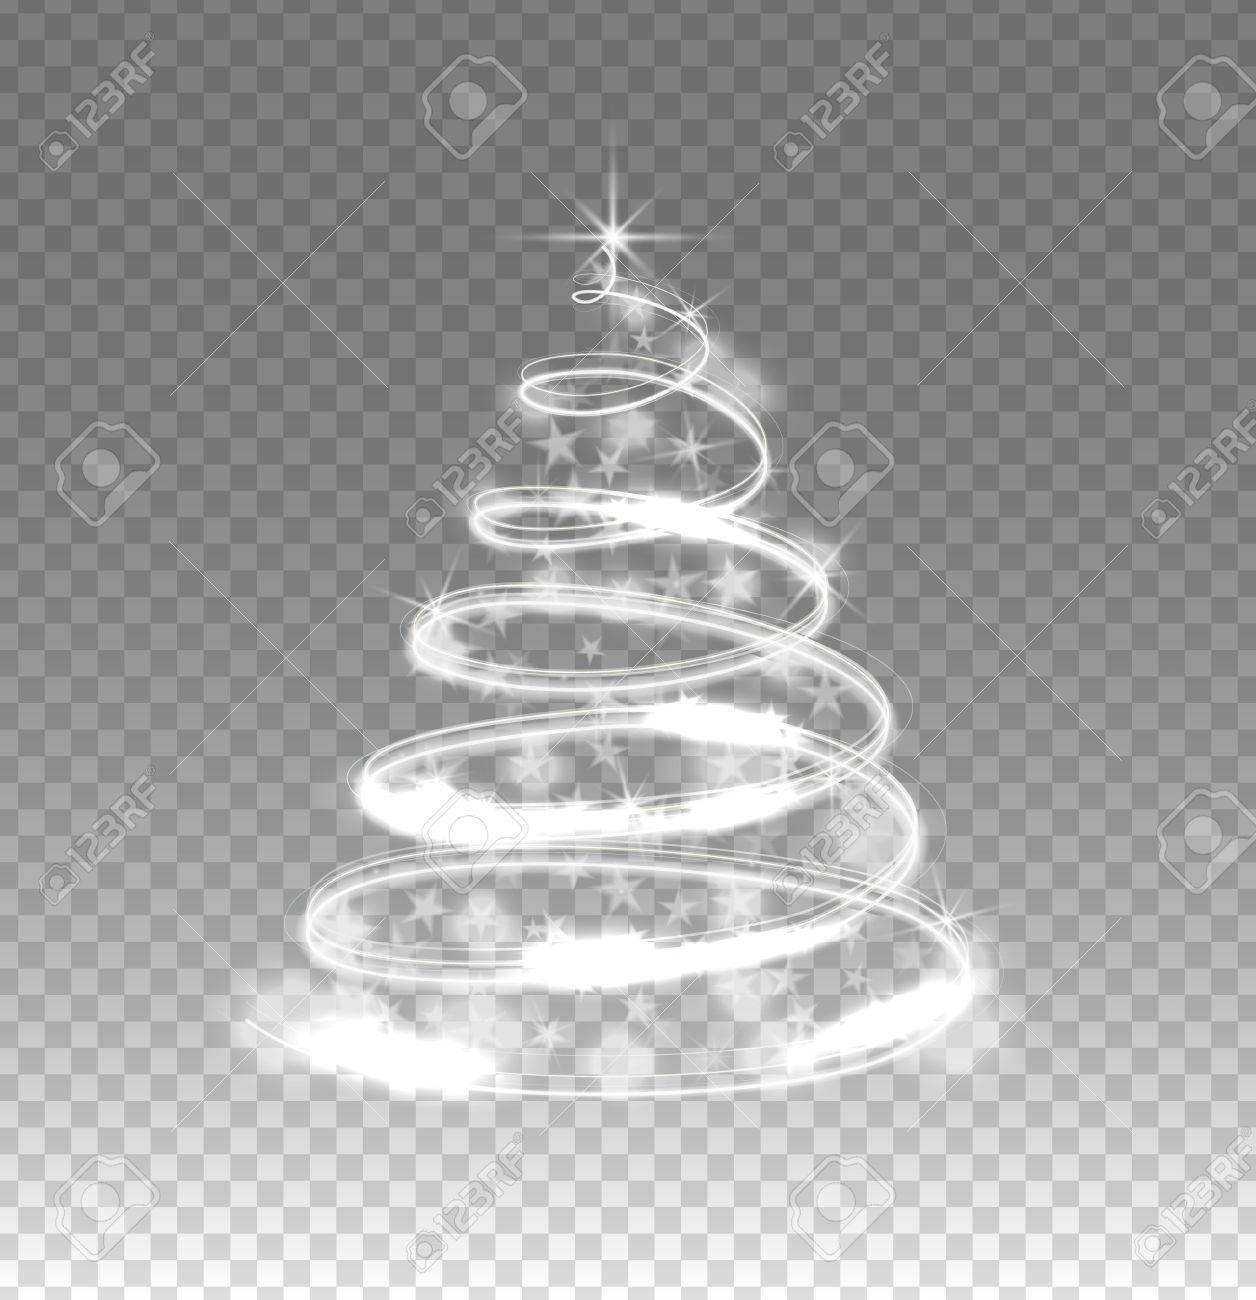 illumination lights tree isolated on transparent background stock photo picture and royalty free image image 87807123 illumination lights tree isolated on transparent background